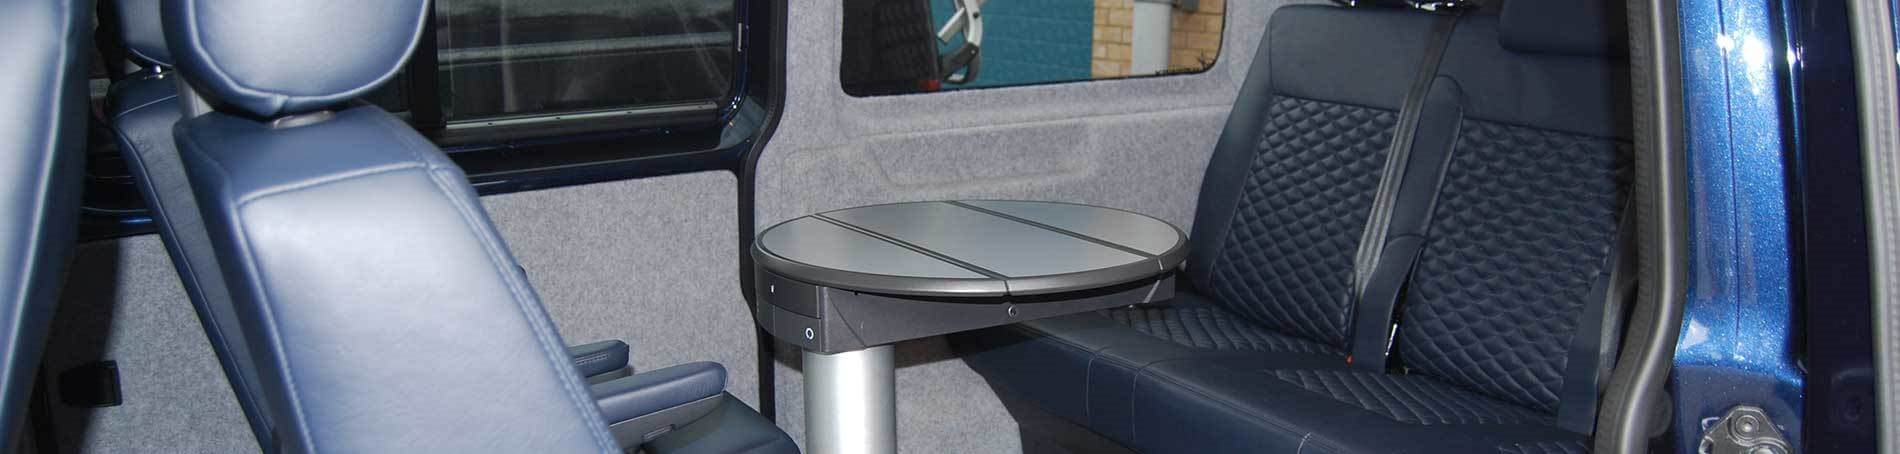 VW T5 T6 Caravelle Conversion